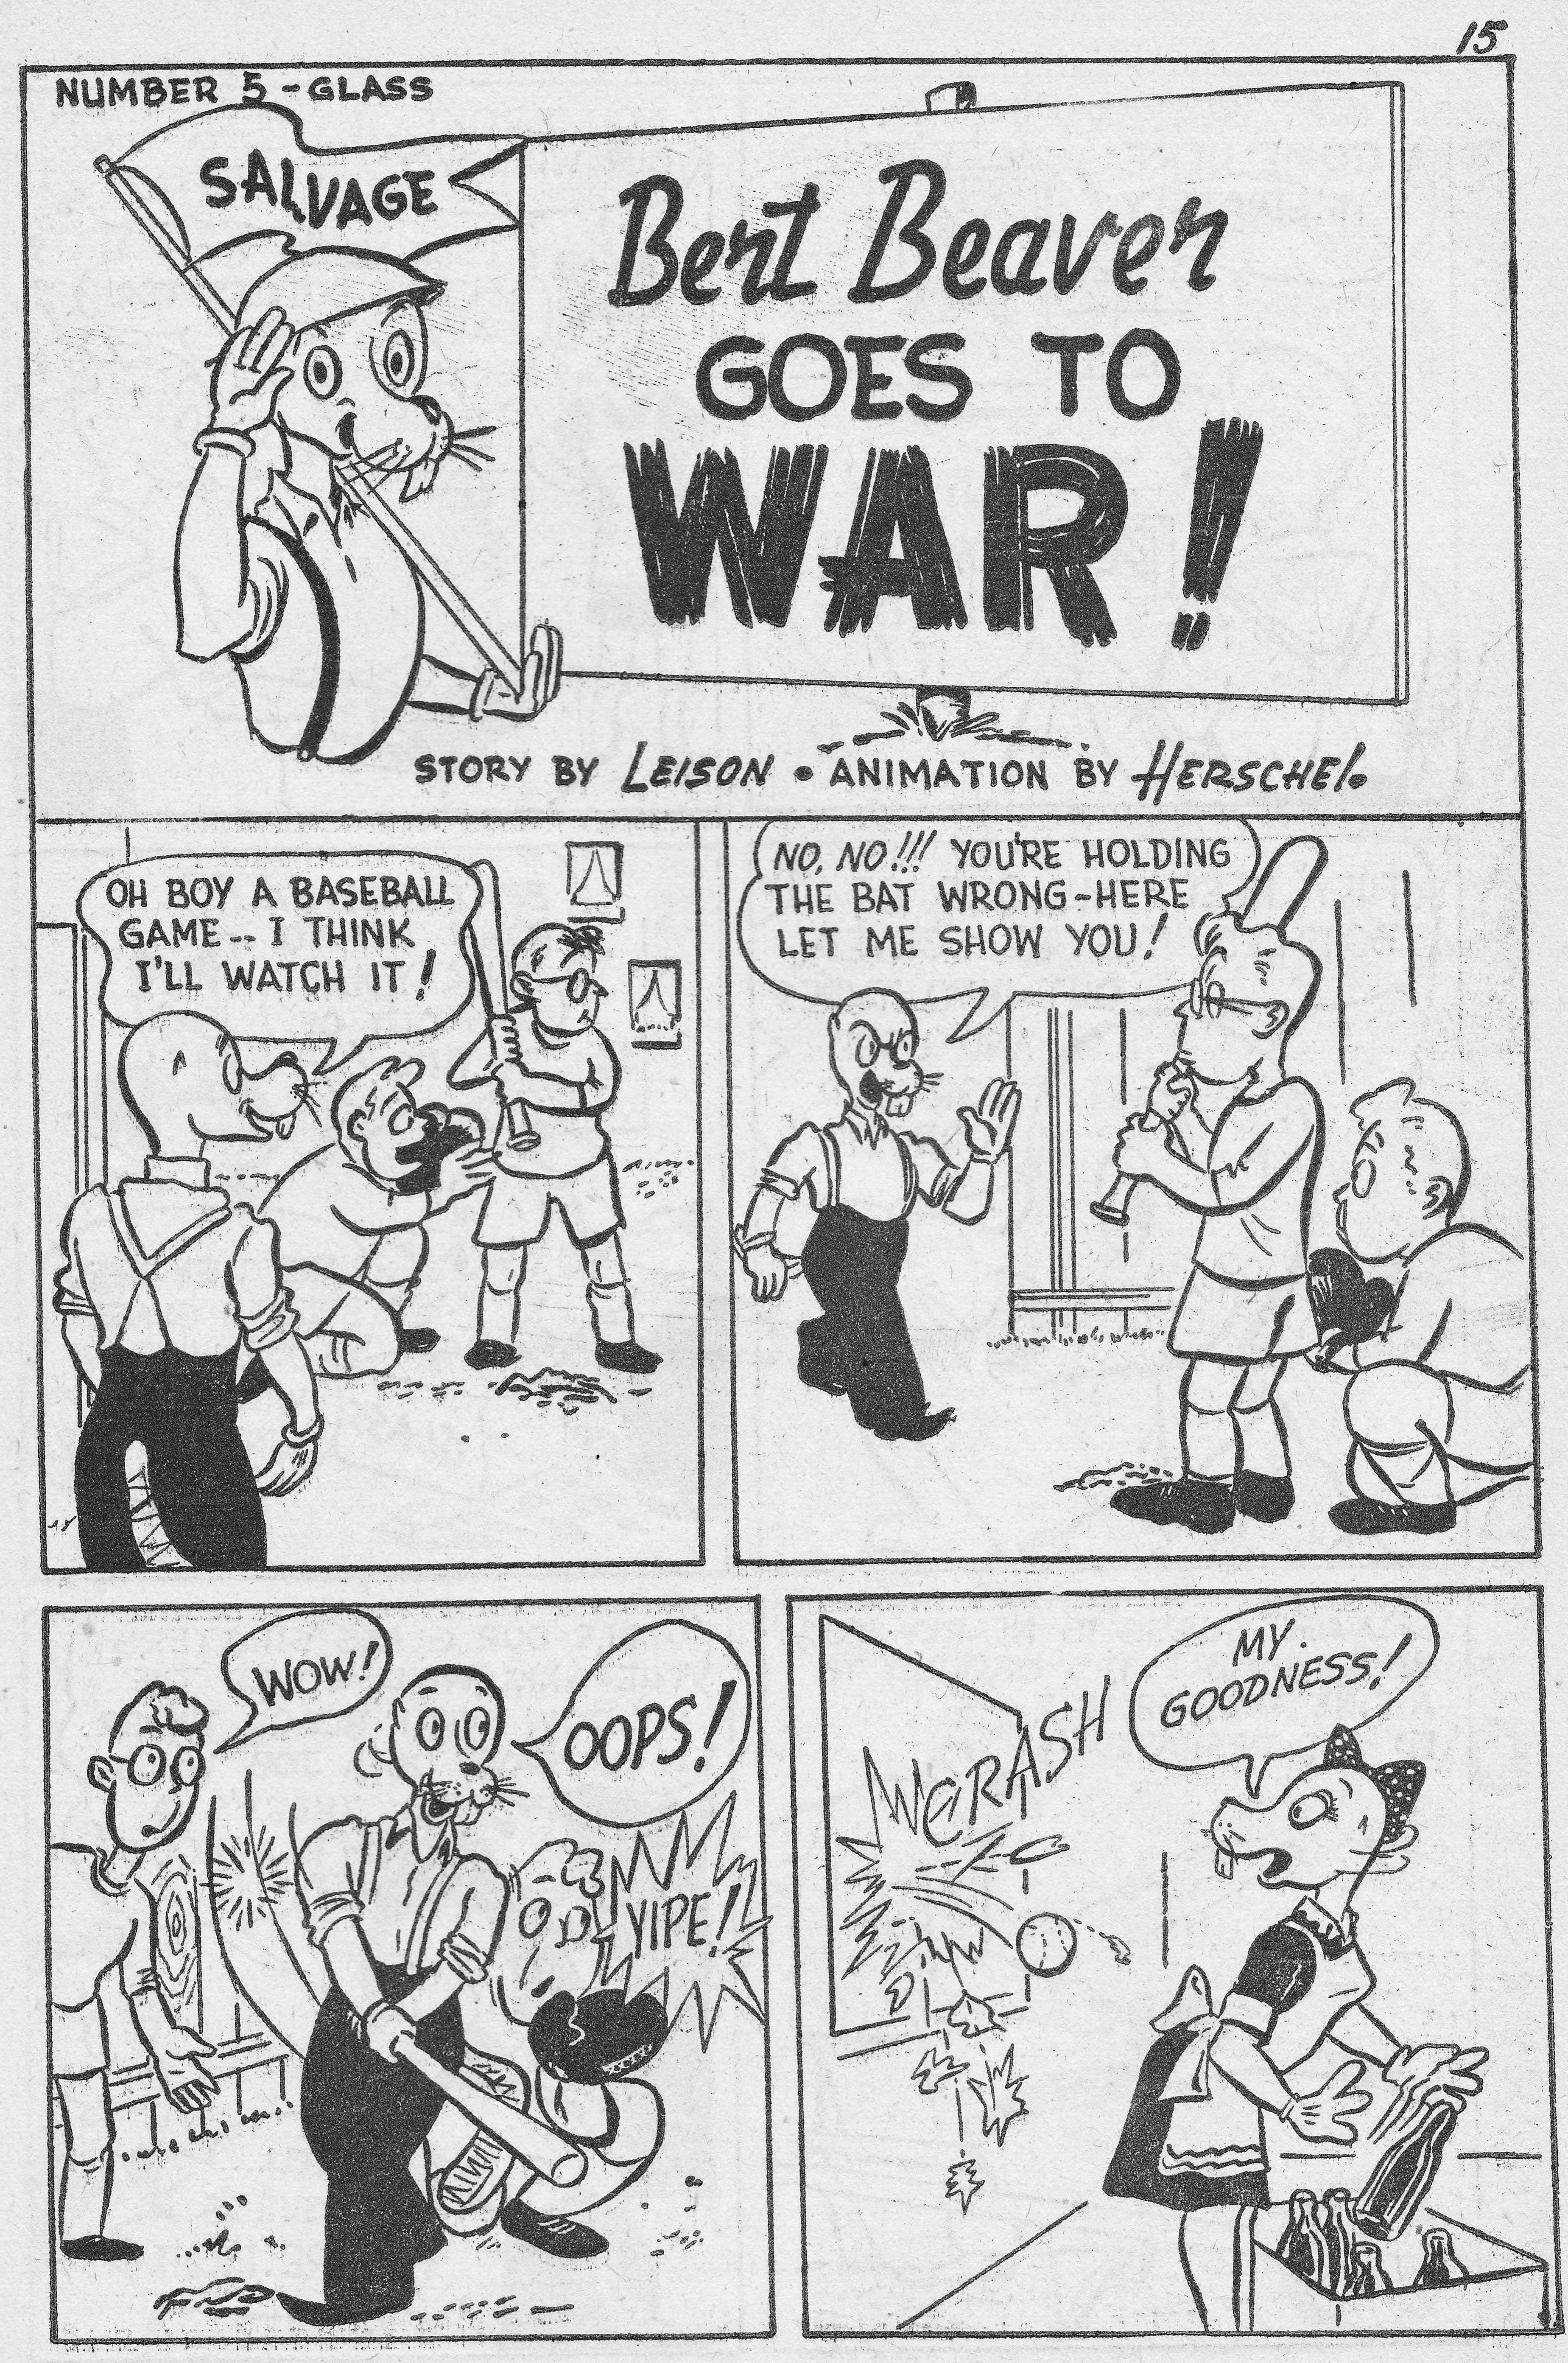 C:\Users\Robert\Documents\CARTOONING ILLUSTRATION ANIMATION\IMAGE CARTOON\IMAGE CARTOON B\BERT BEAVER, Canadian Heroes, 3-4, Mar 19434,15.jpg